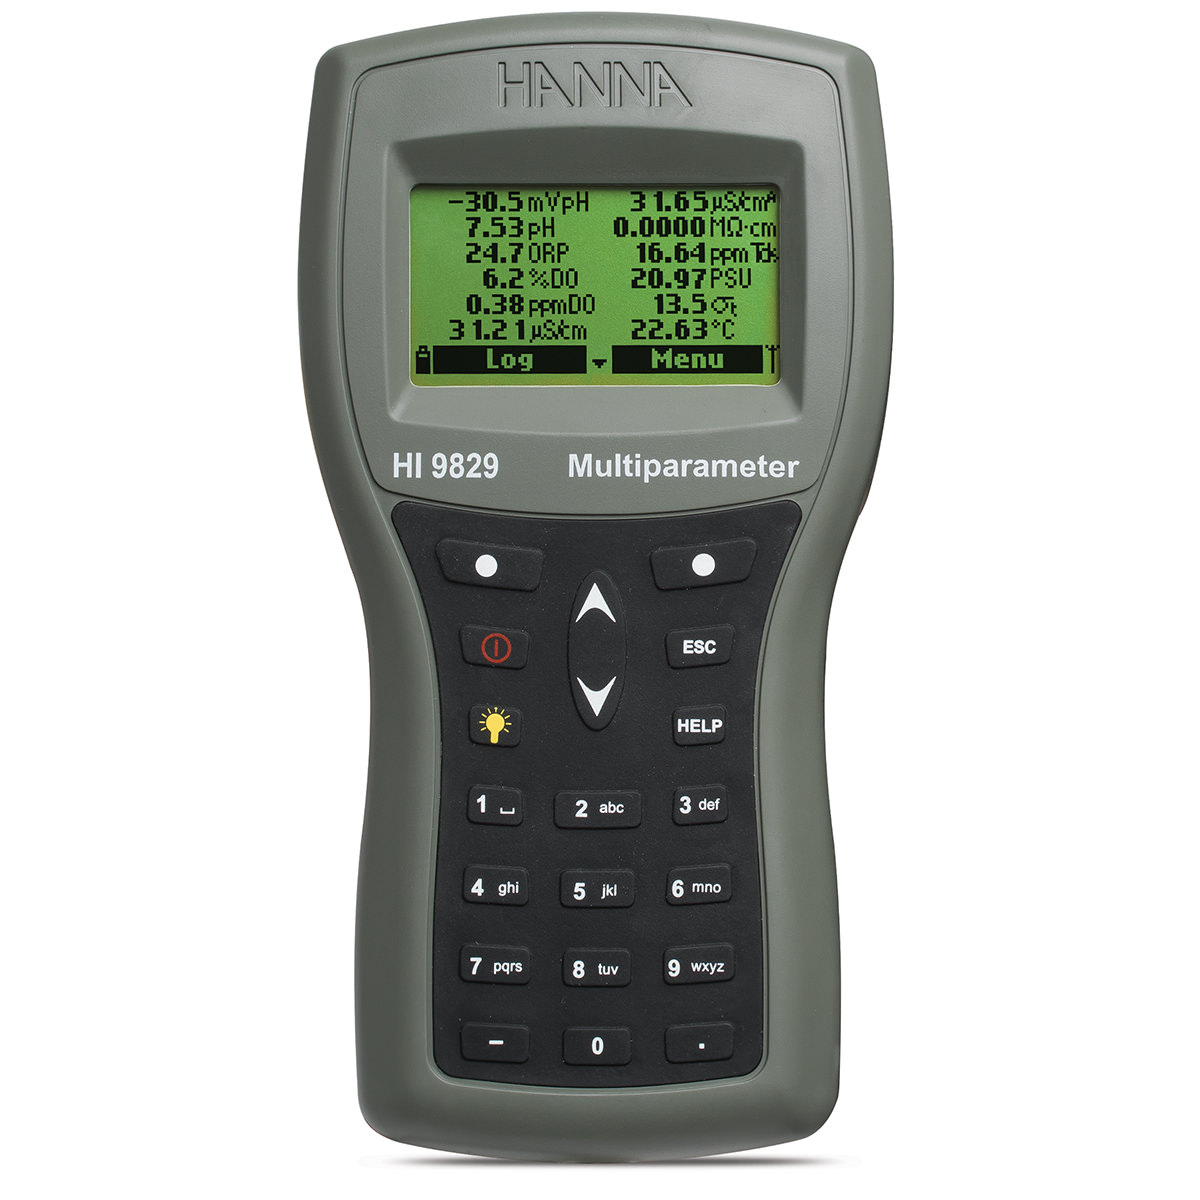 HI9829 Multiparameter pH/ISE/EC/DO/Turbidity Waterproof Meter with GPS option